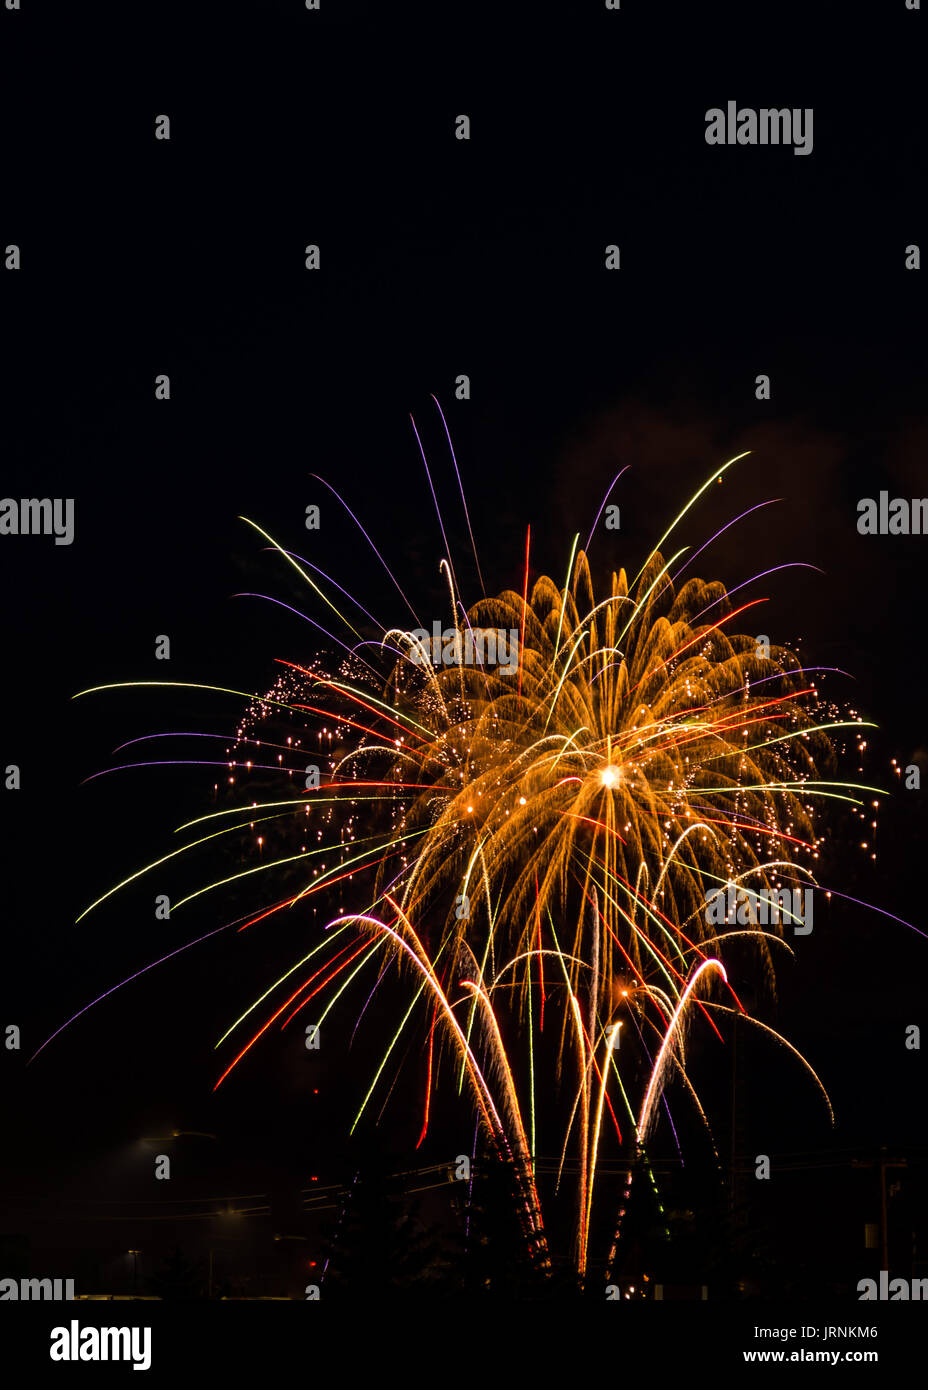 Bright fireworks display of varied colors during an evening of celebration during a national holiday. - Stock Image